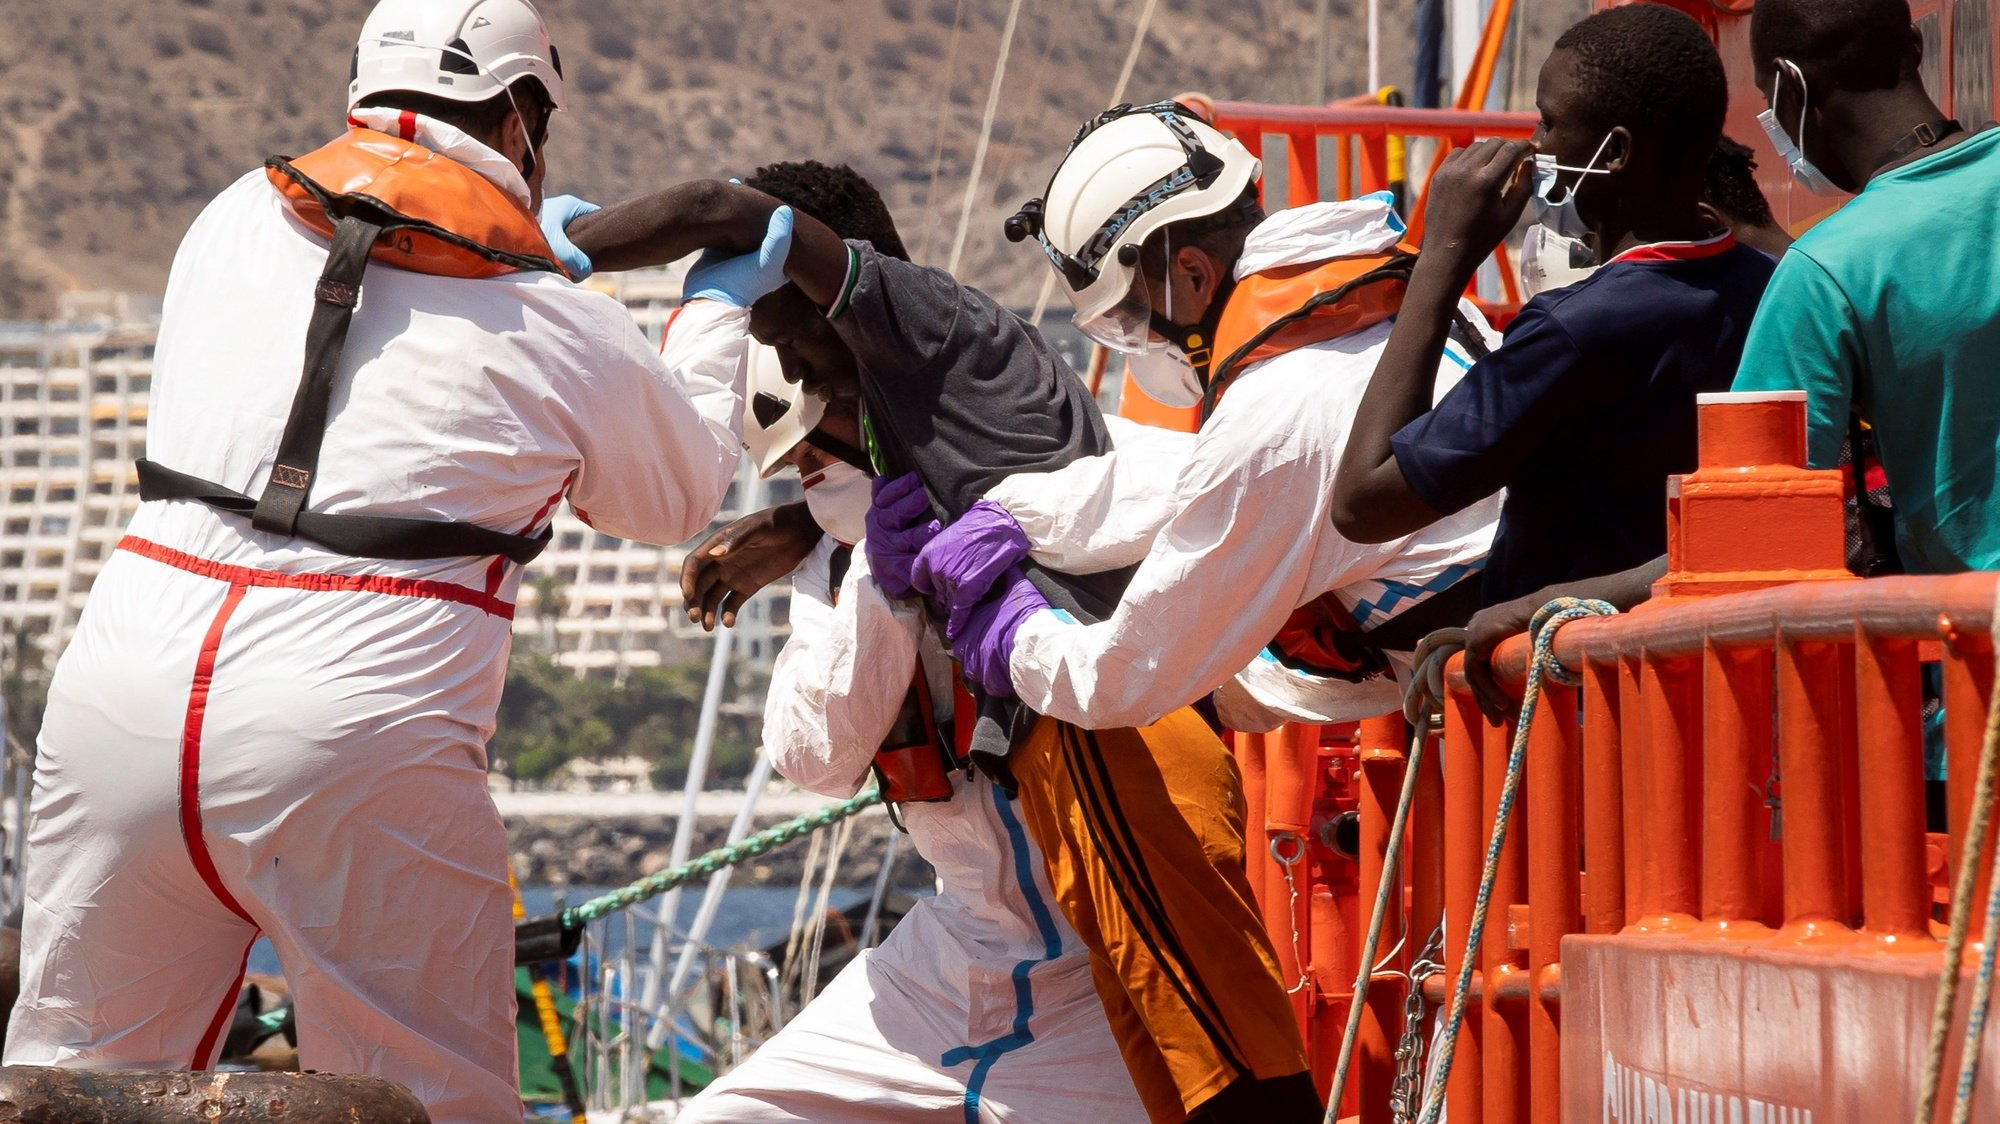 epa09447314 Some of the 56 rescued migrants arrive at the Port in Arguineguin, Gran Canaria, Canary Islands, Spain, 04 September 2021, after being rescued while traveling on a small boat 24 kilometers off the coast of Arguineguin.  EPA/Quique Curbelo